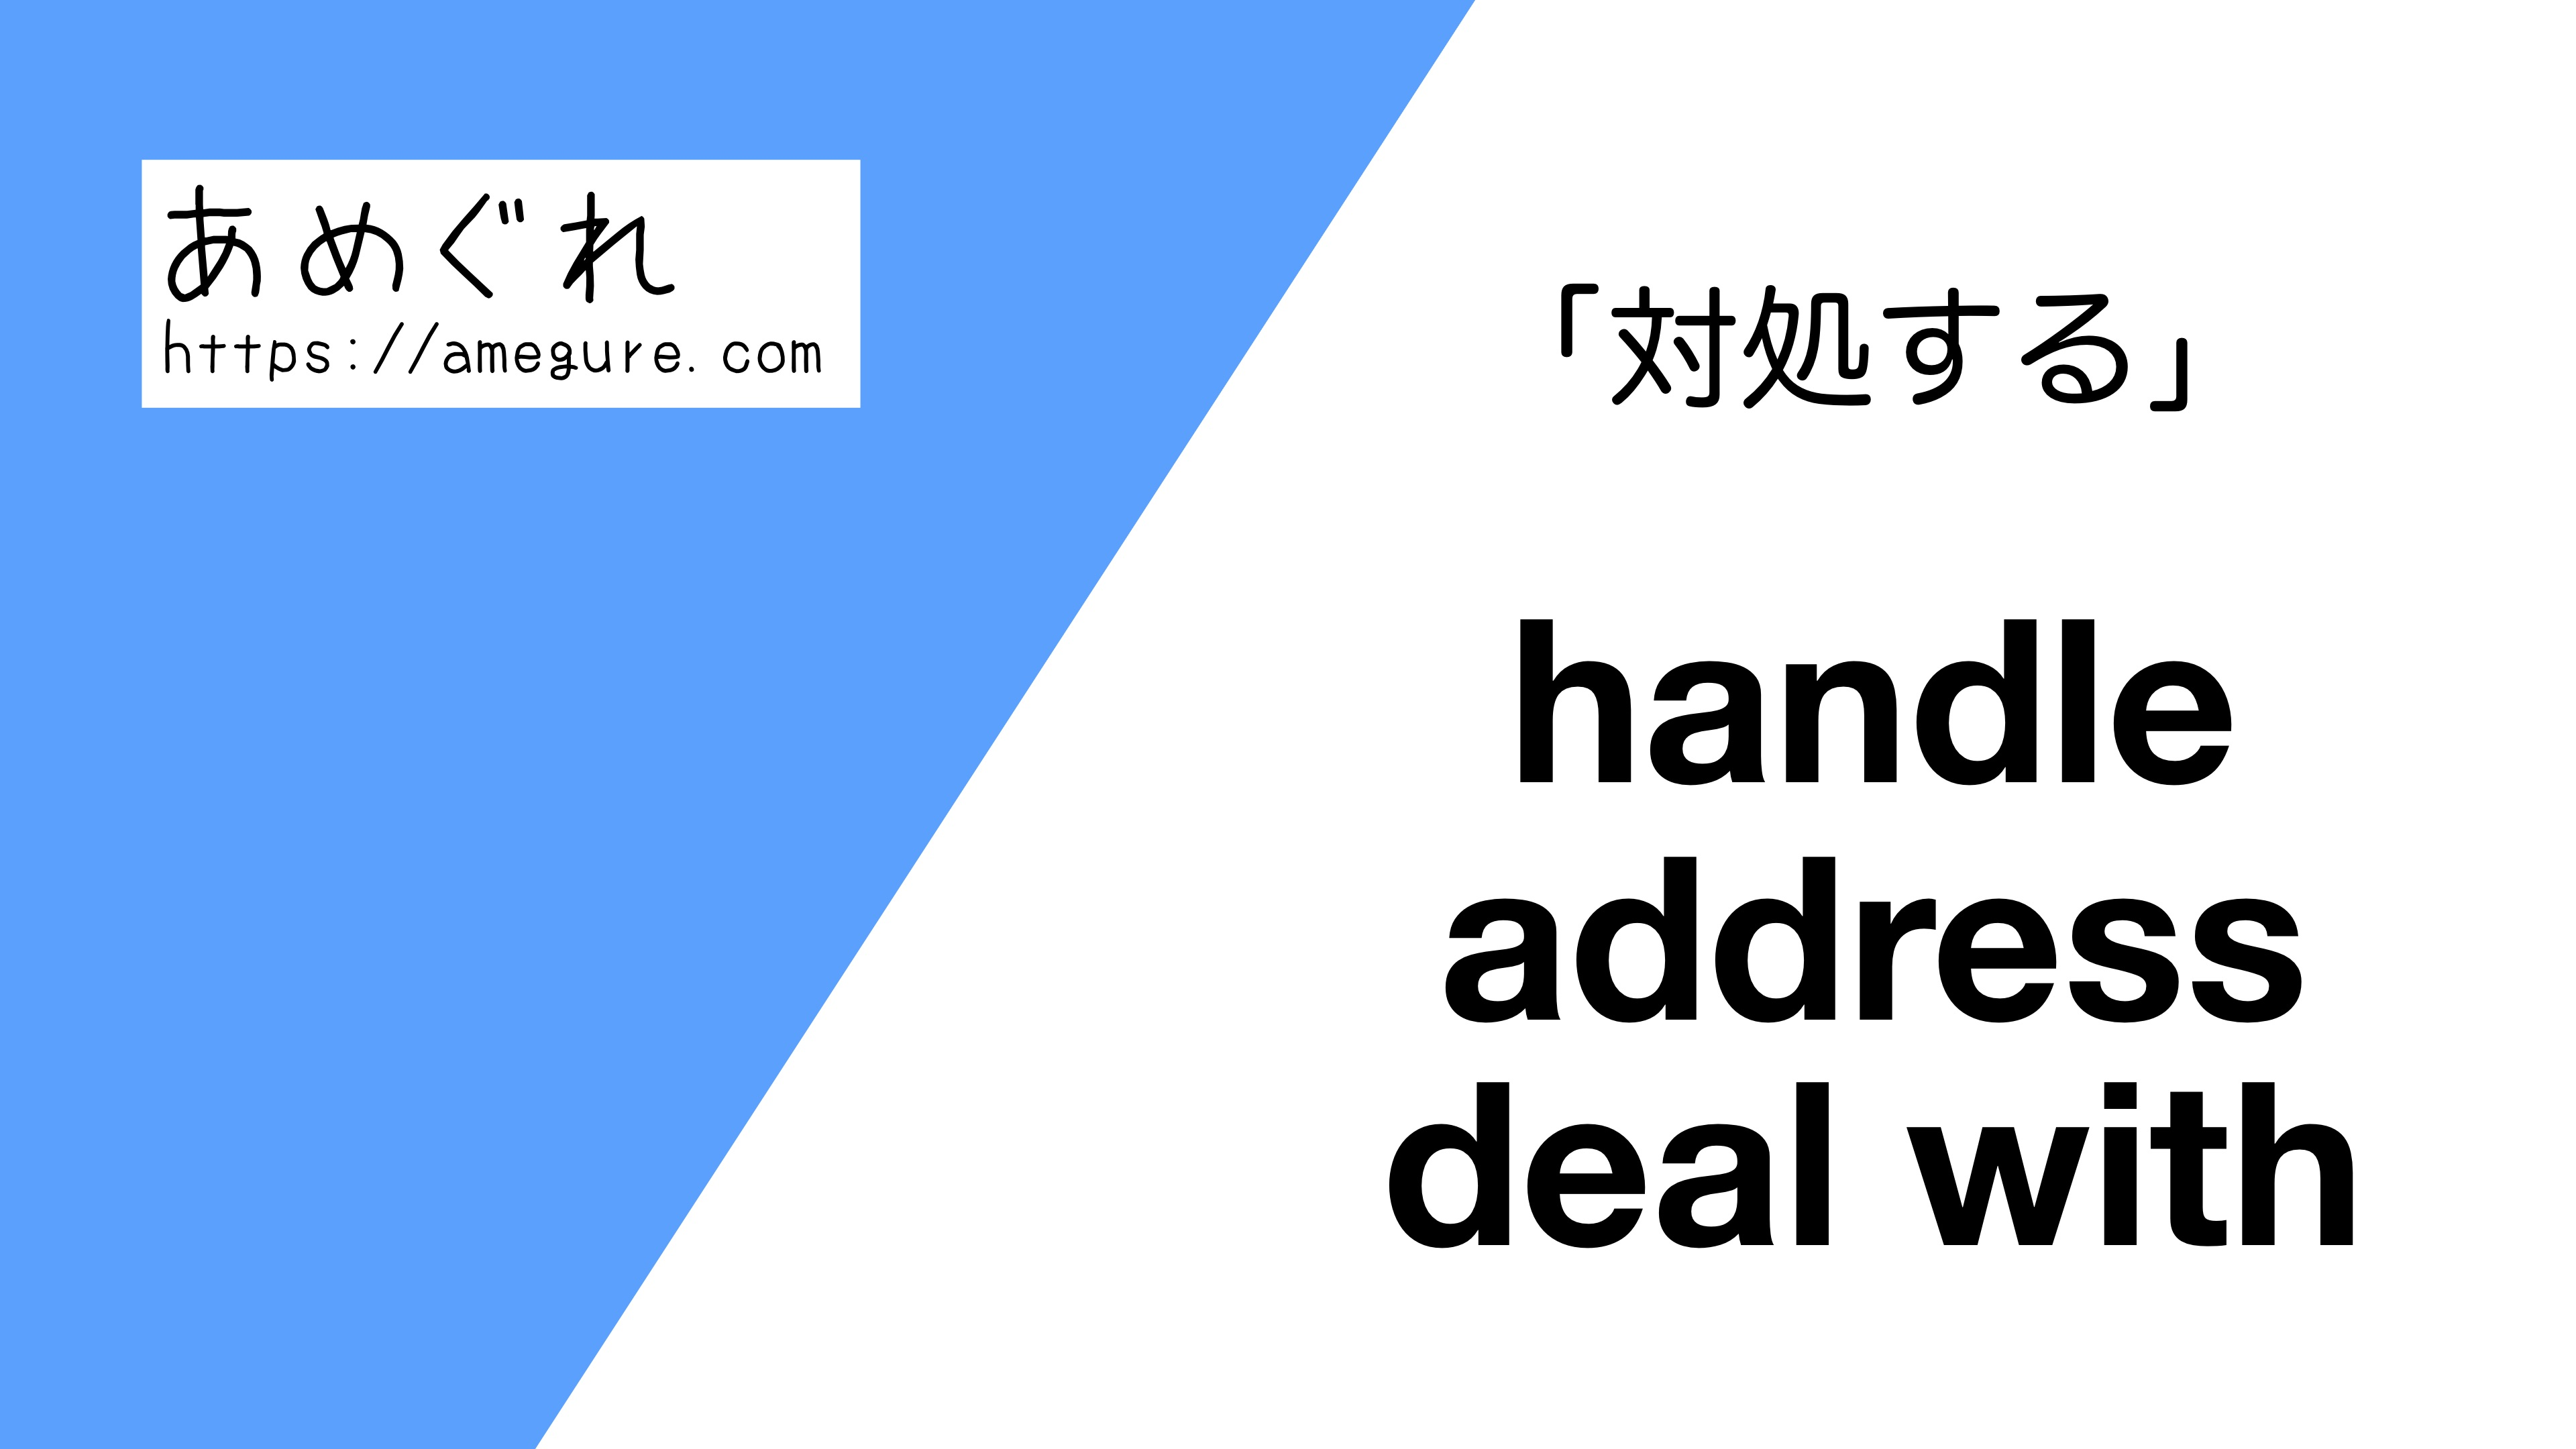 handle-address-deal-with違い